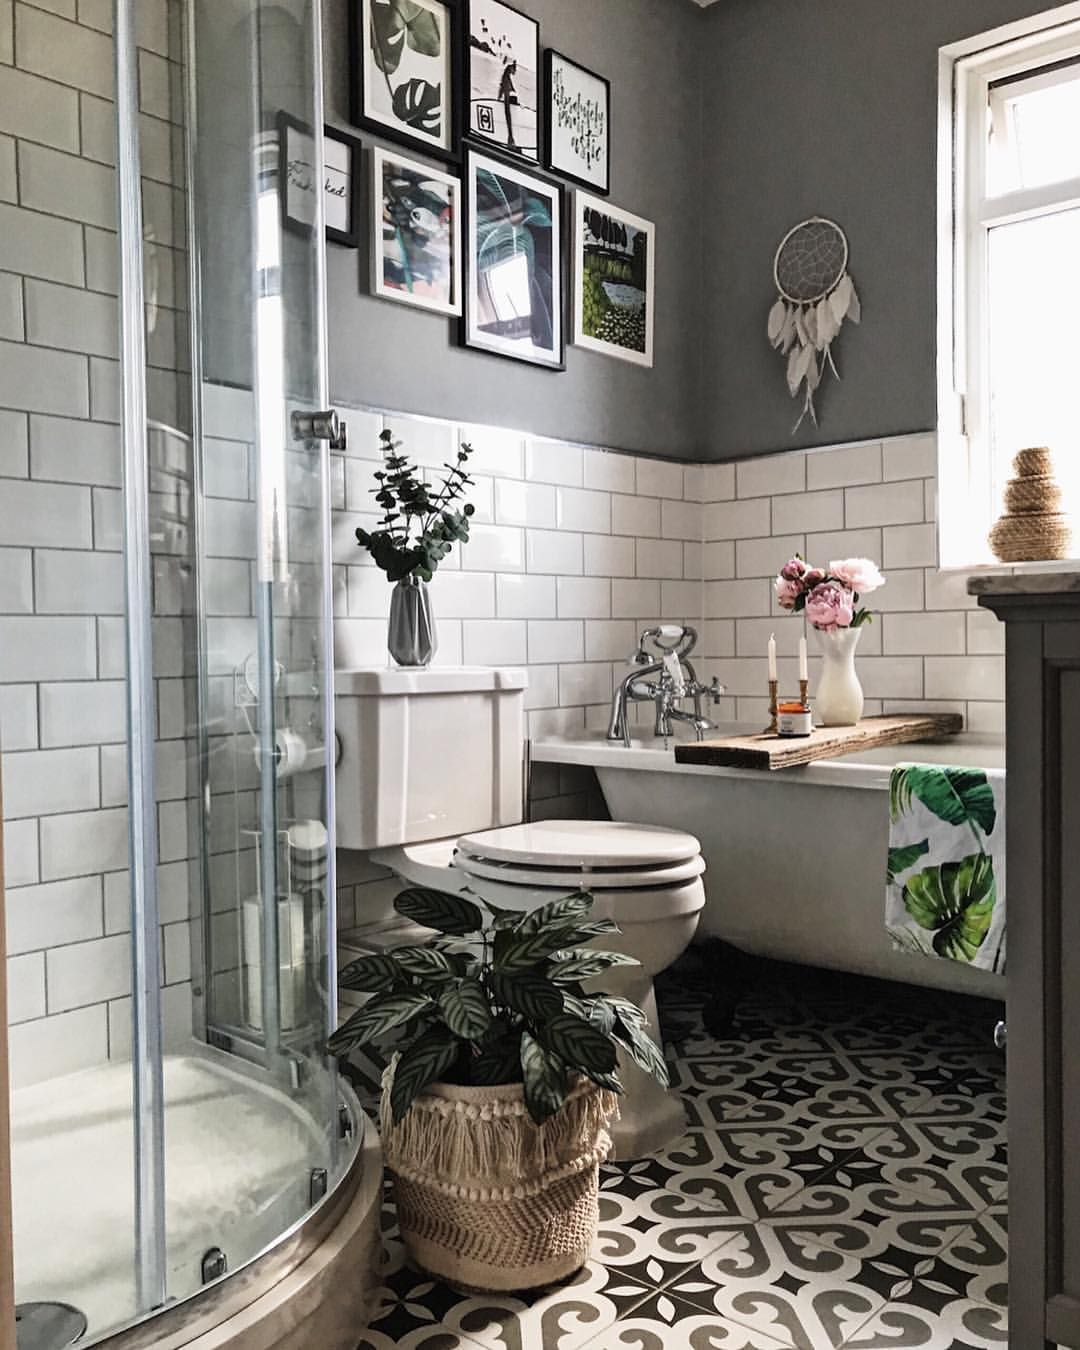 floor ideas for small bathrooms bathroom floor tiles ideas bathroom tiles are an easy way to update your bathroom without 416